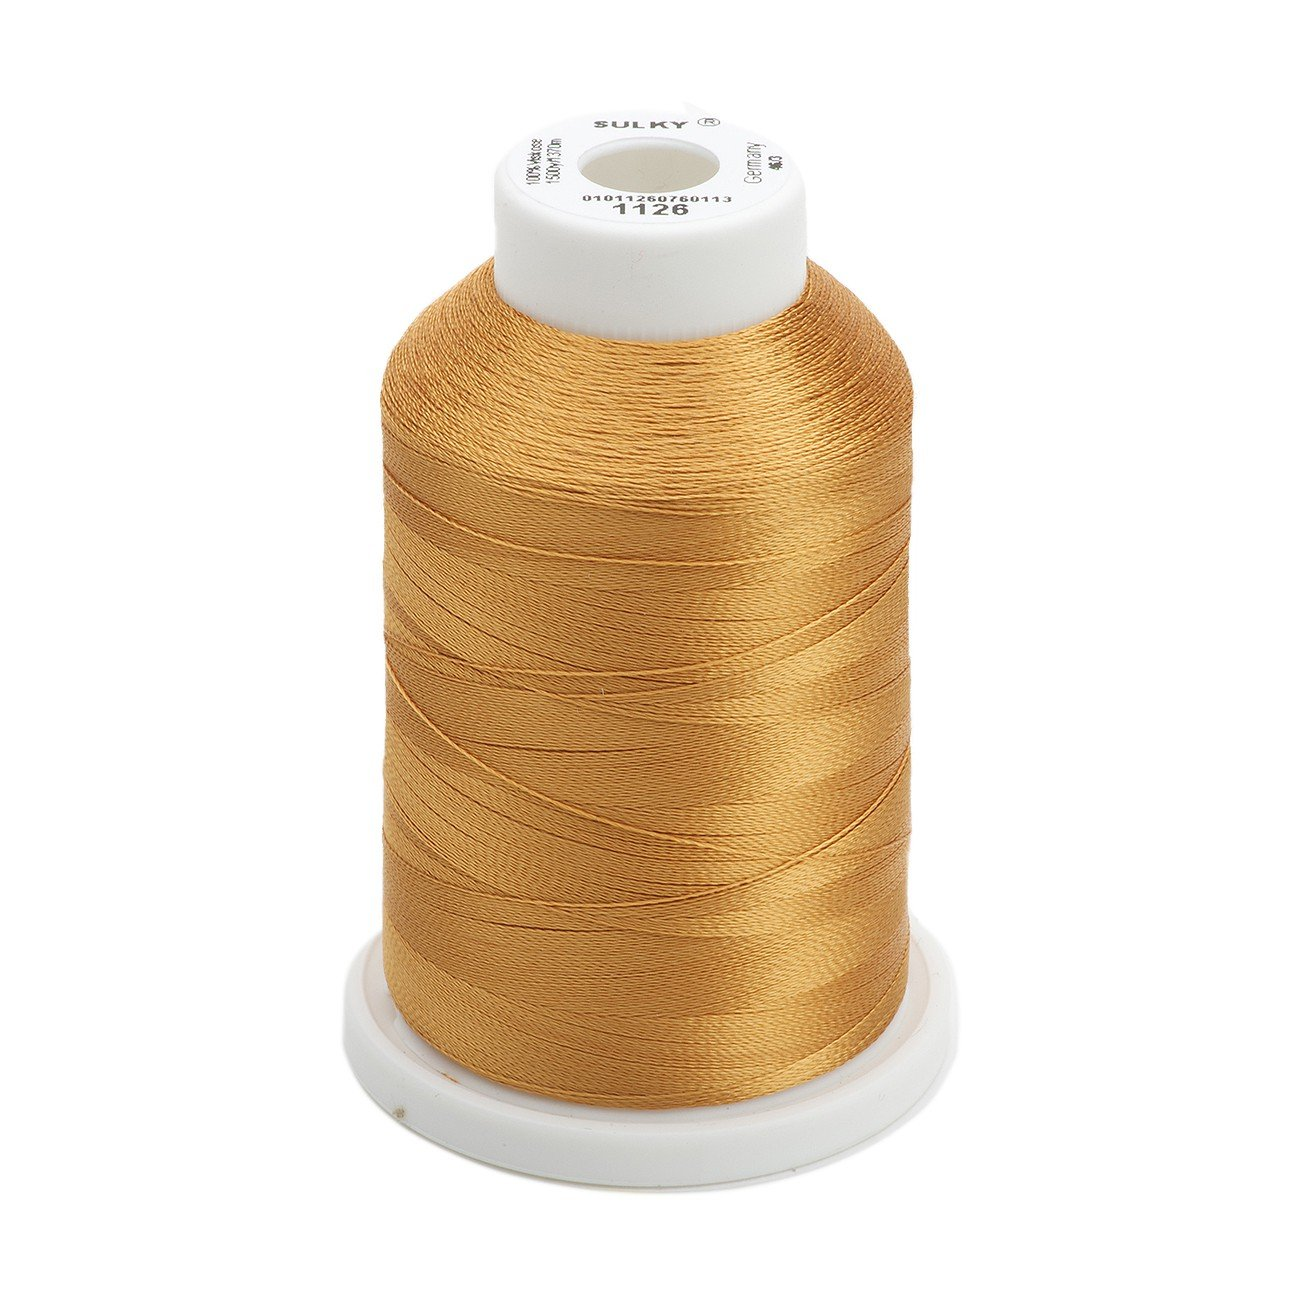 Sulky Of America 944-1025 268d 40wt 2-Ply Rayon Thread, 1500 yd, Mine Gold